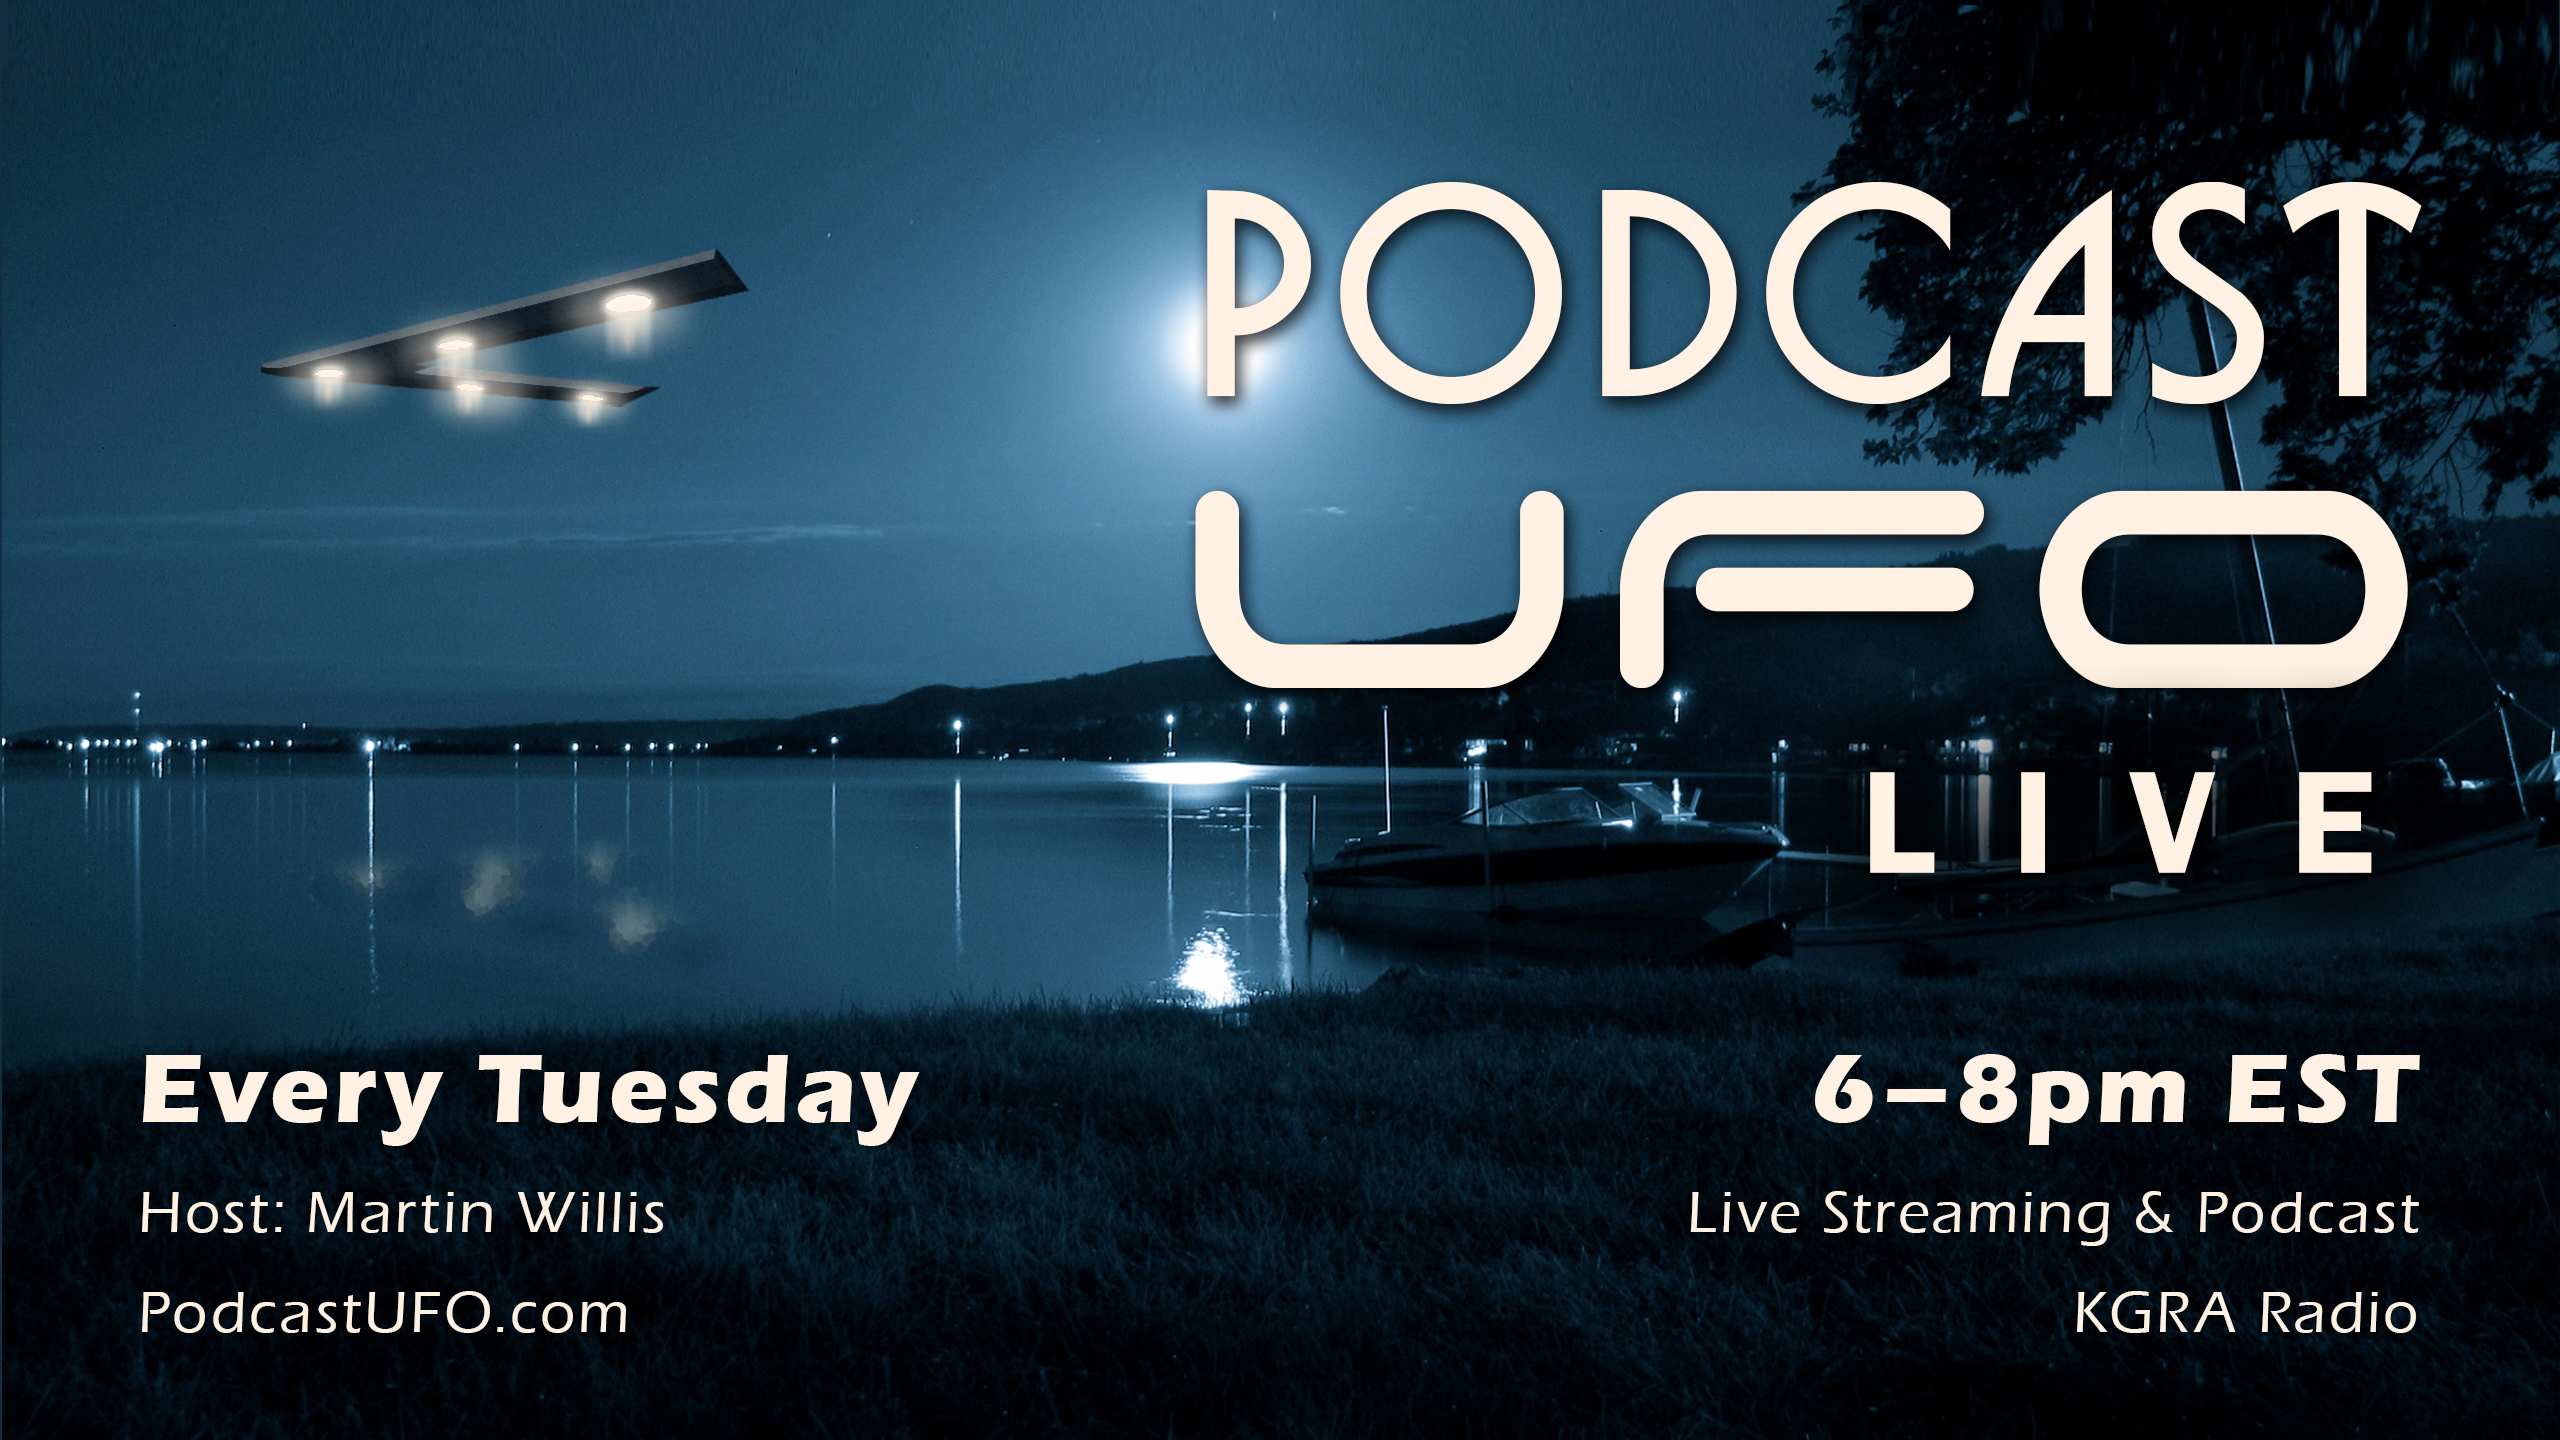 Podcast UFO – An Internet Live Stream Show & Podcast Related